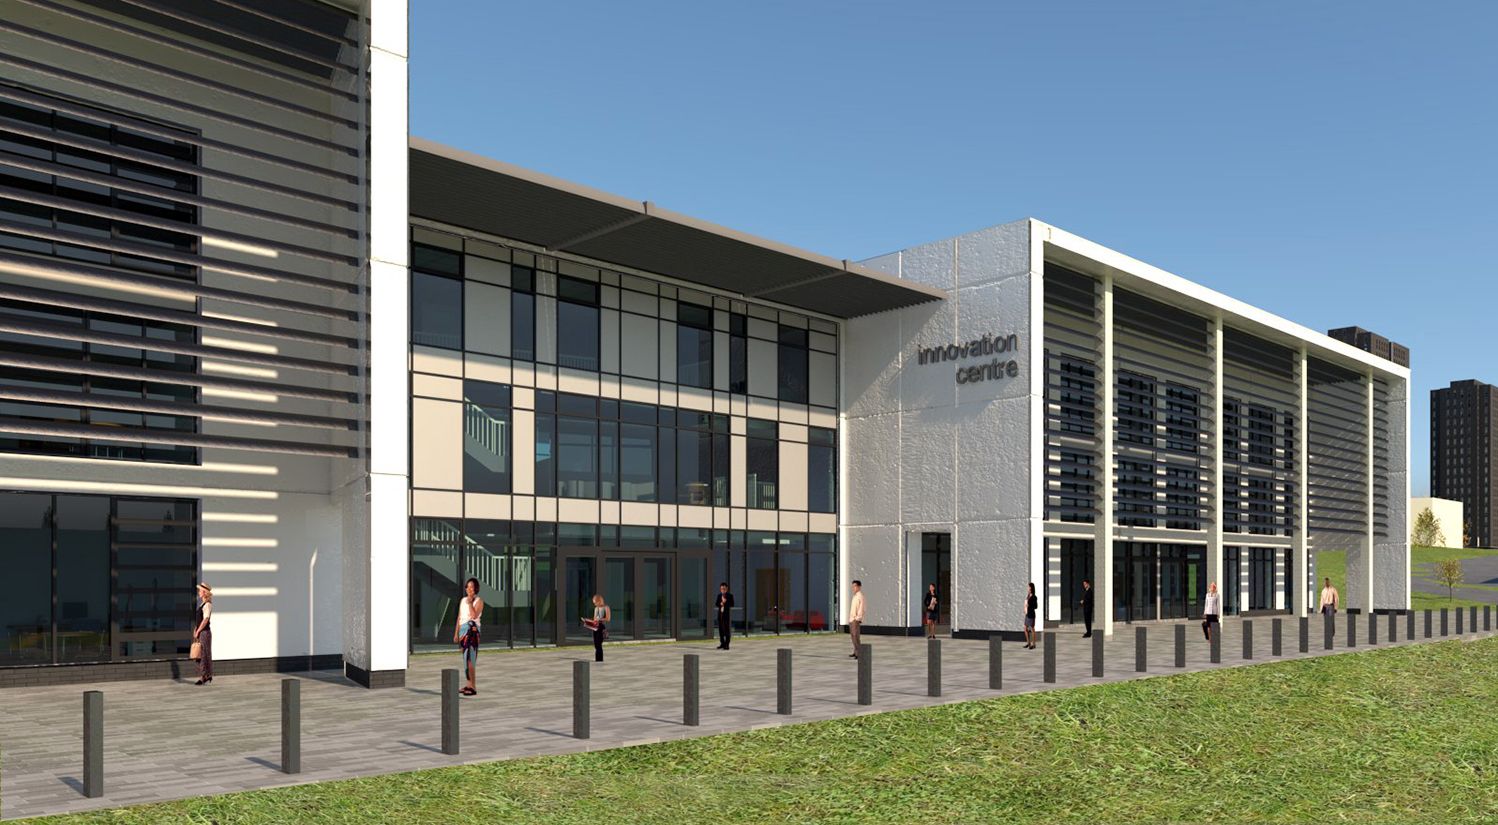 Innovation Centre at University of Essex